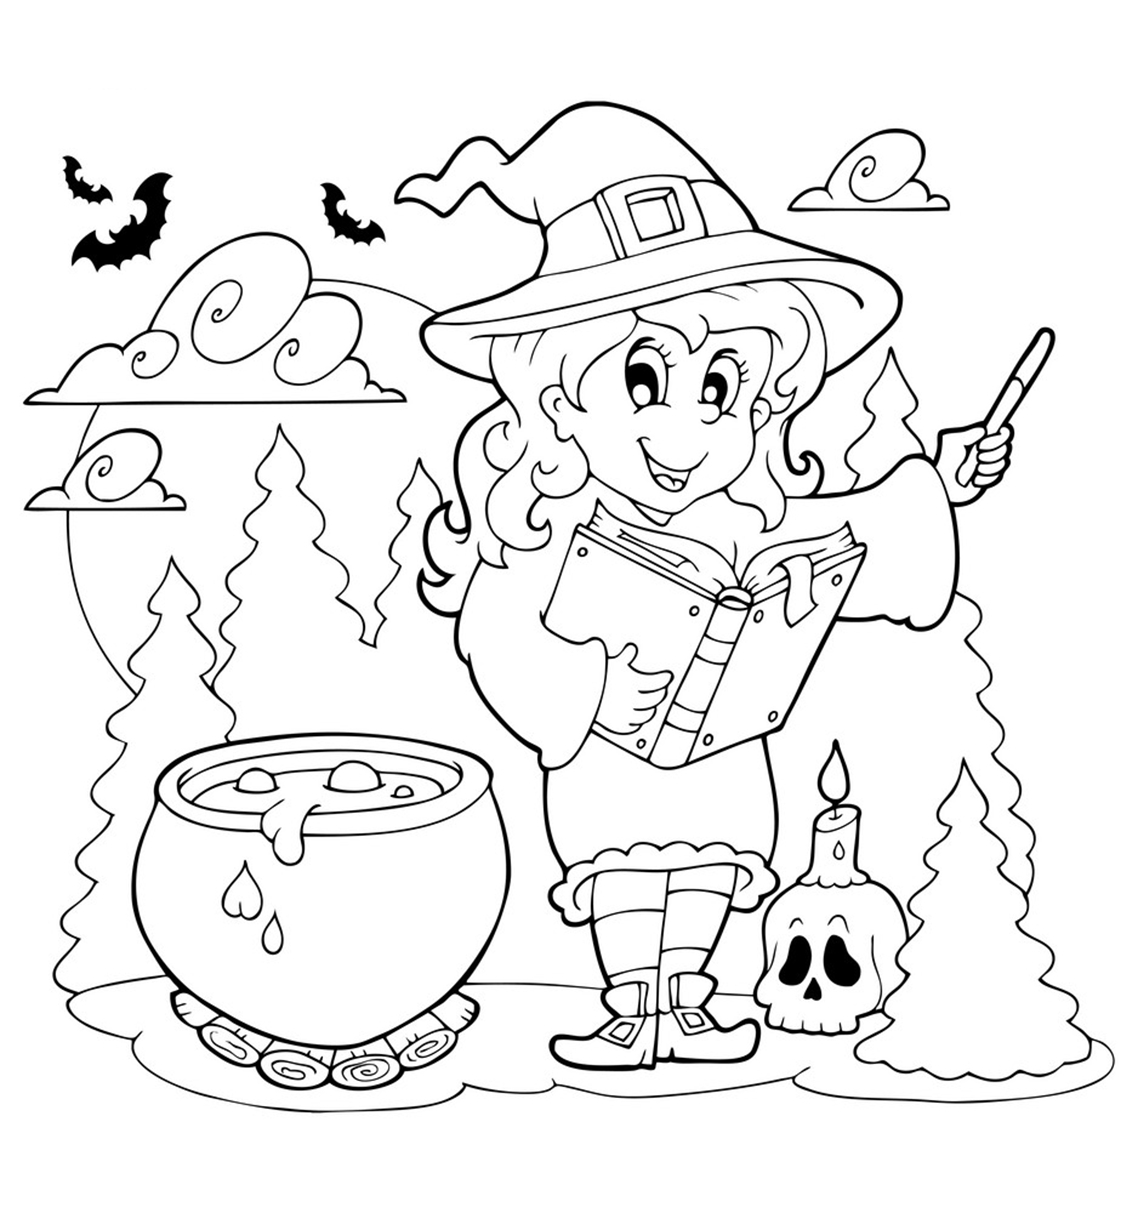 Free Printable Halloween Coloring Page Free Printable Halloween Coloring Pages Updated August 2019